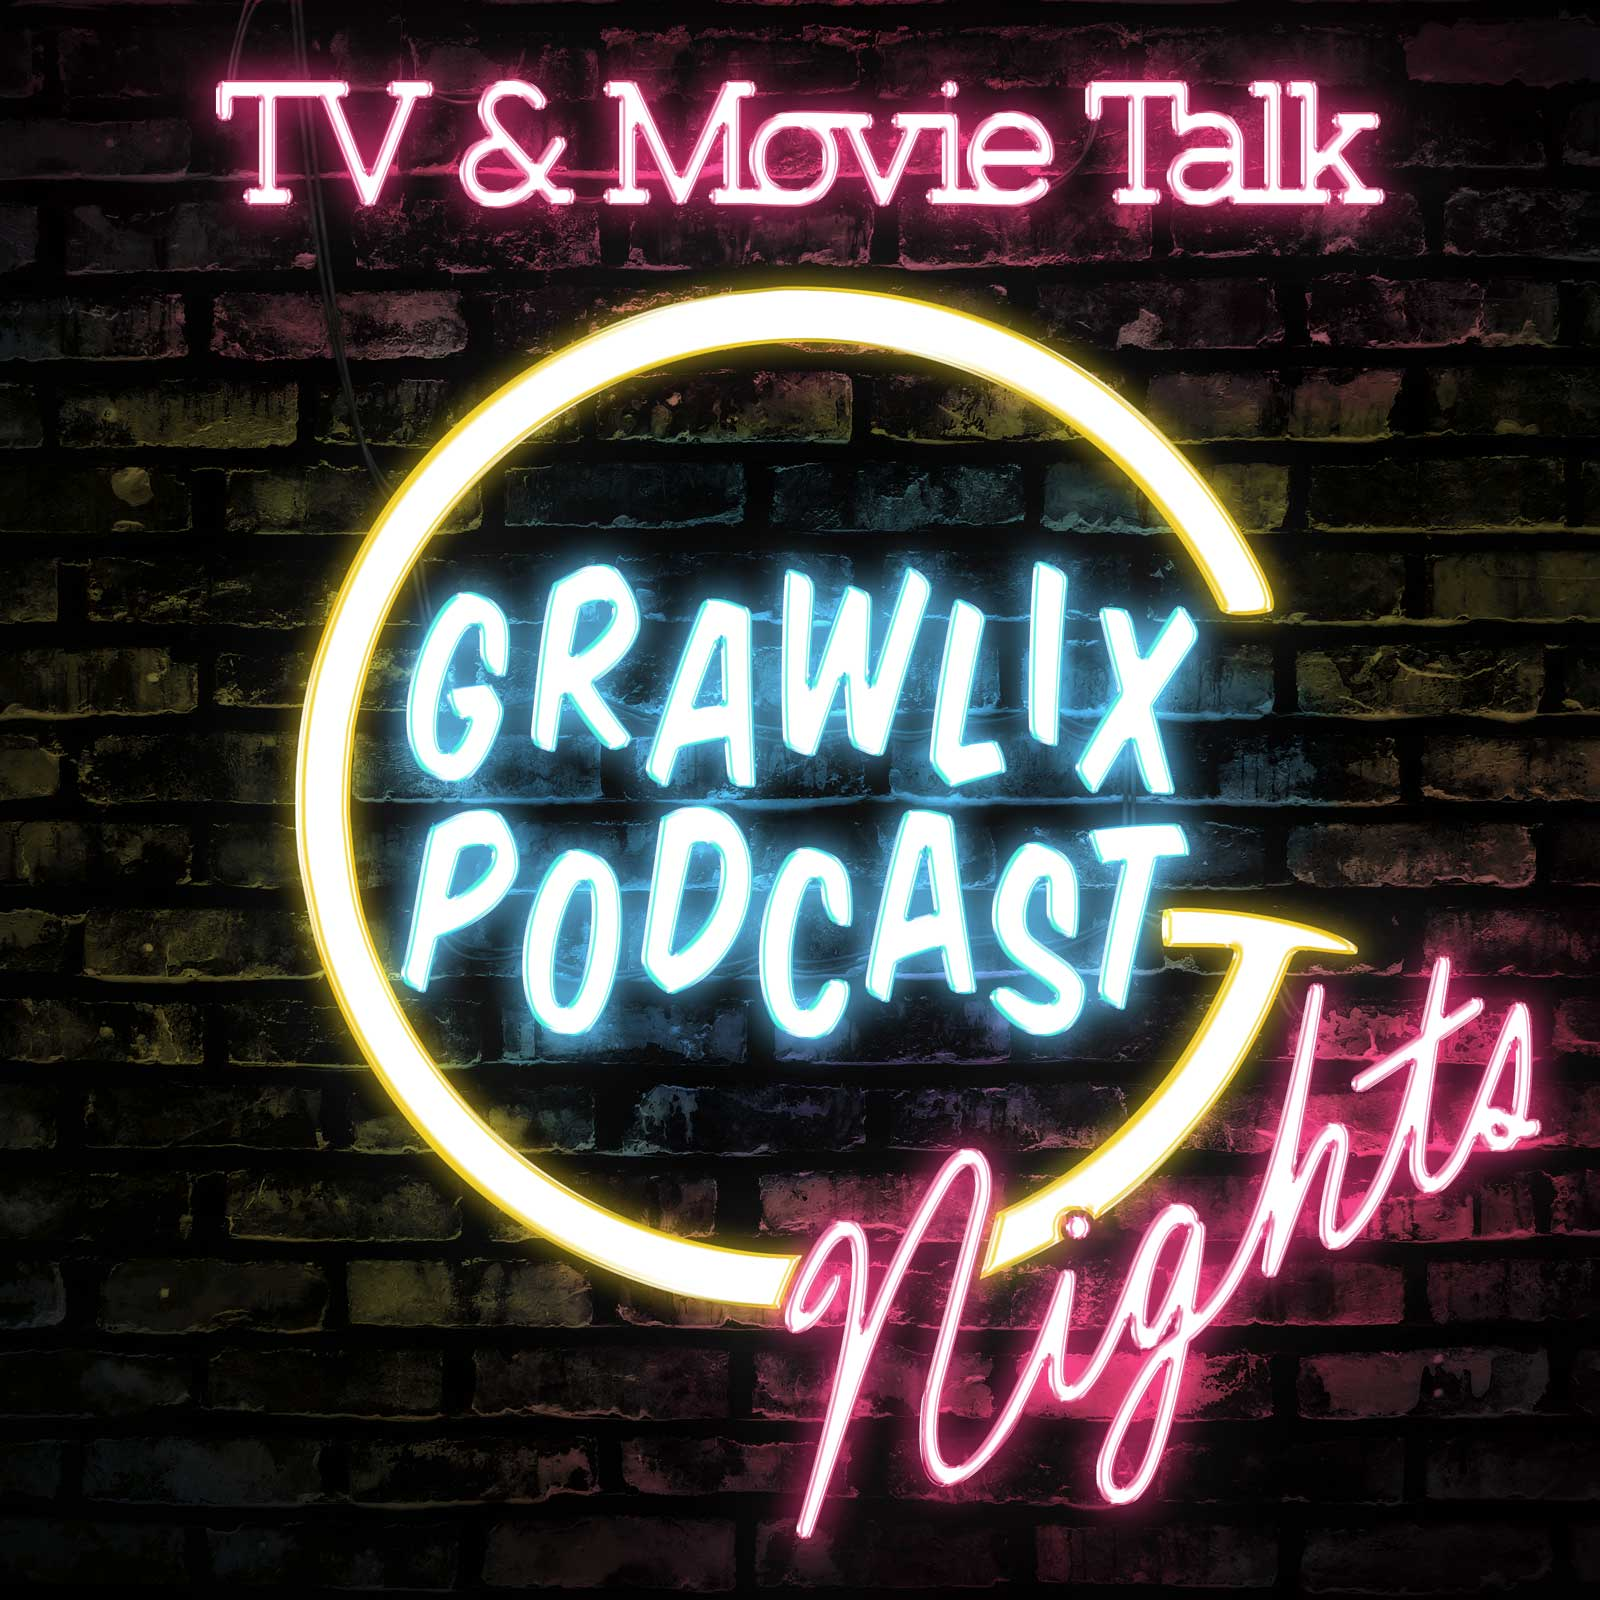 Grawlix Podcast Live